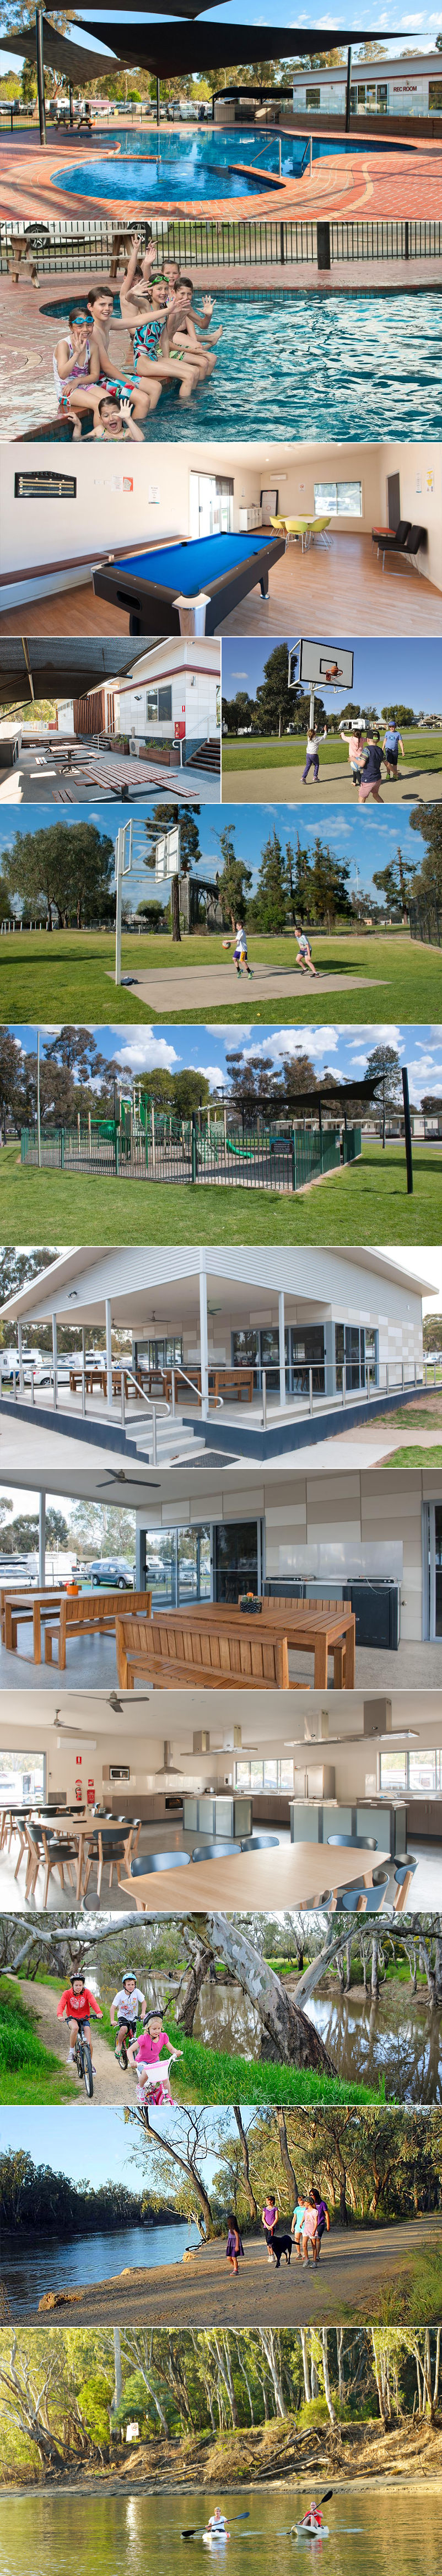 NRMA Echuca Holiday Park - Grounds and facilities